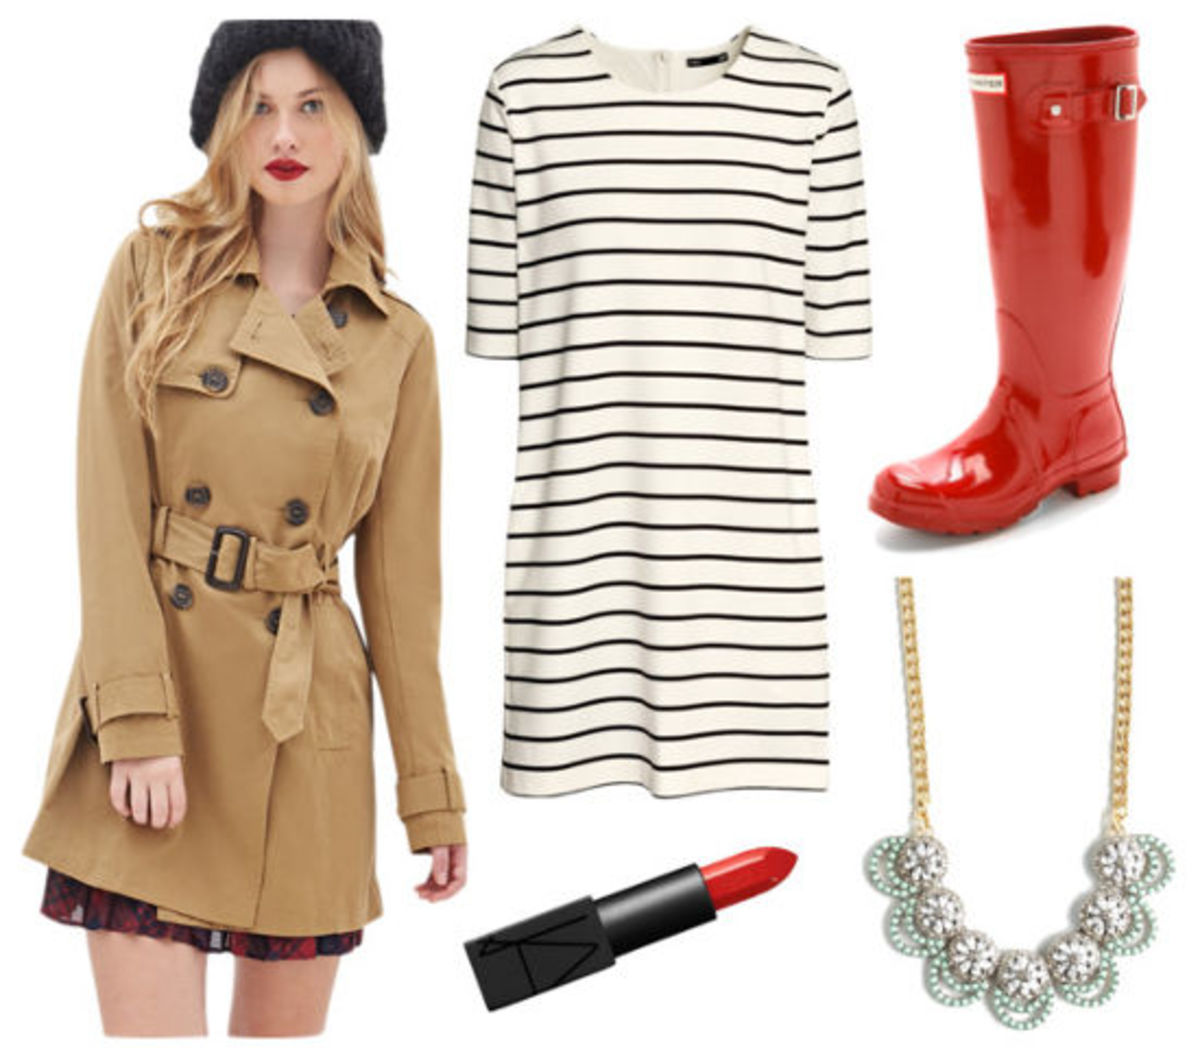 white-dress-tshirt-stripe-tan-jacket-coat-trench-red-shoe-boots-wellies-rain-bib-necklace-spring-summer-lunch.jpg